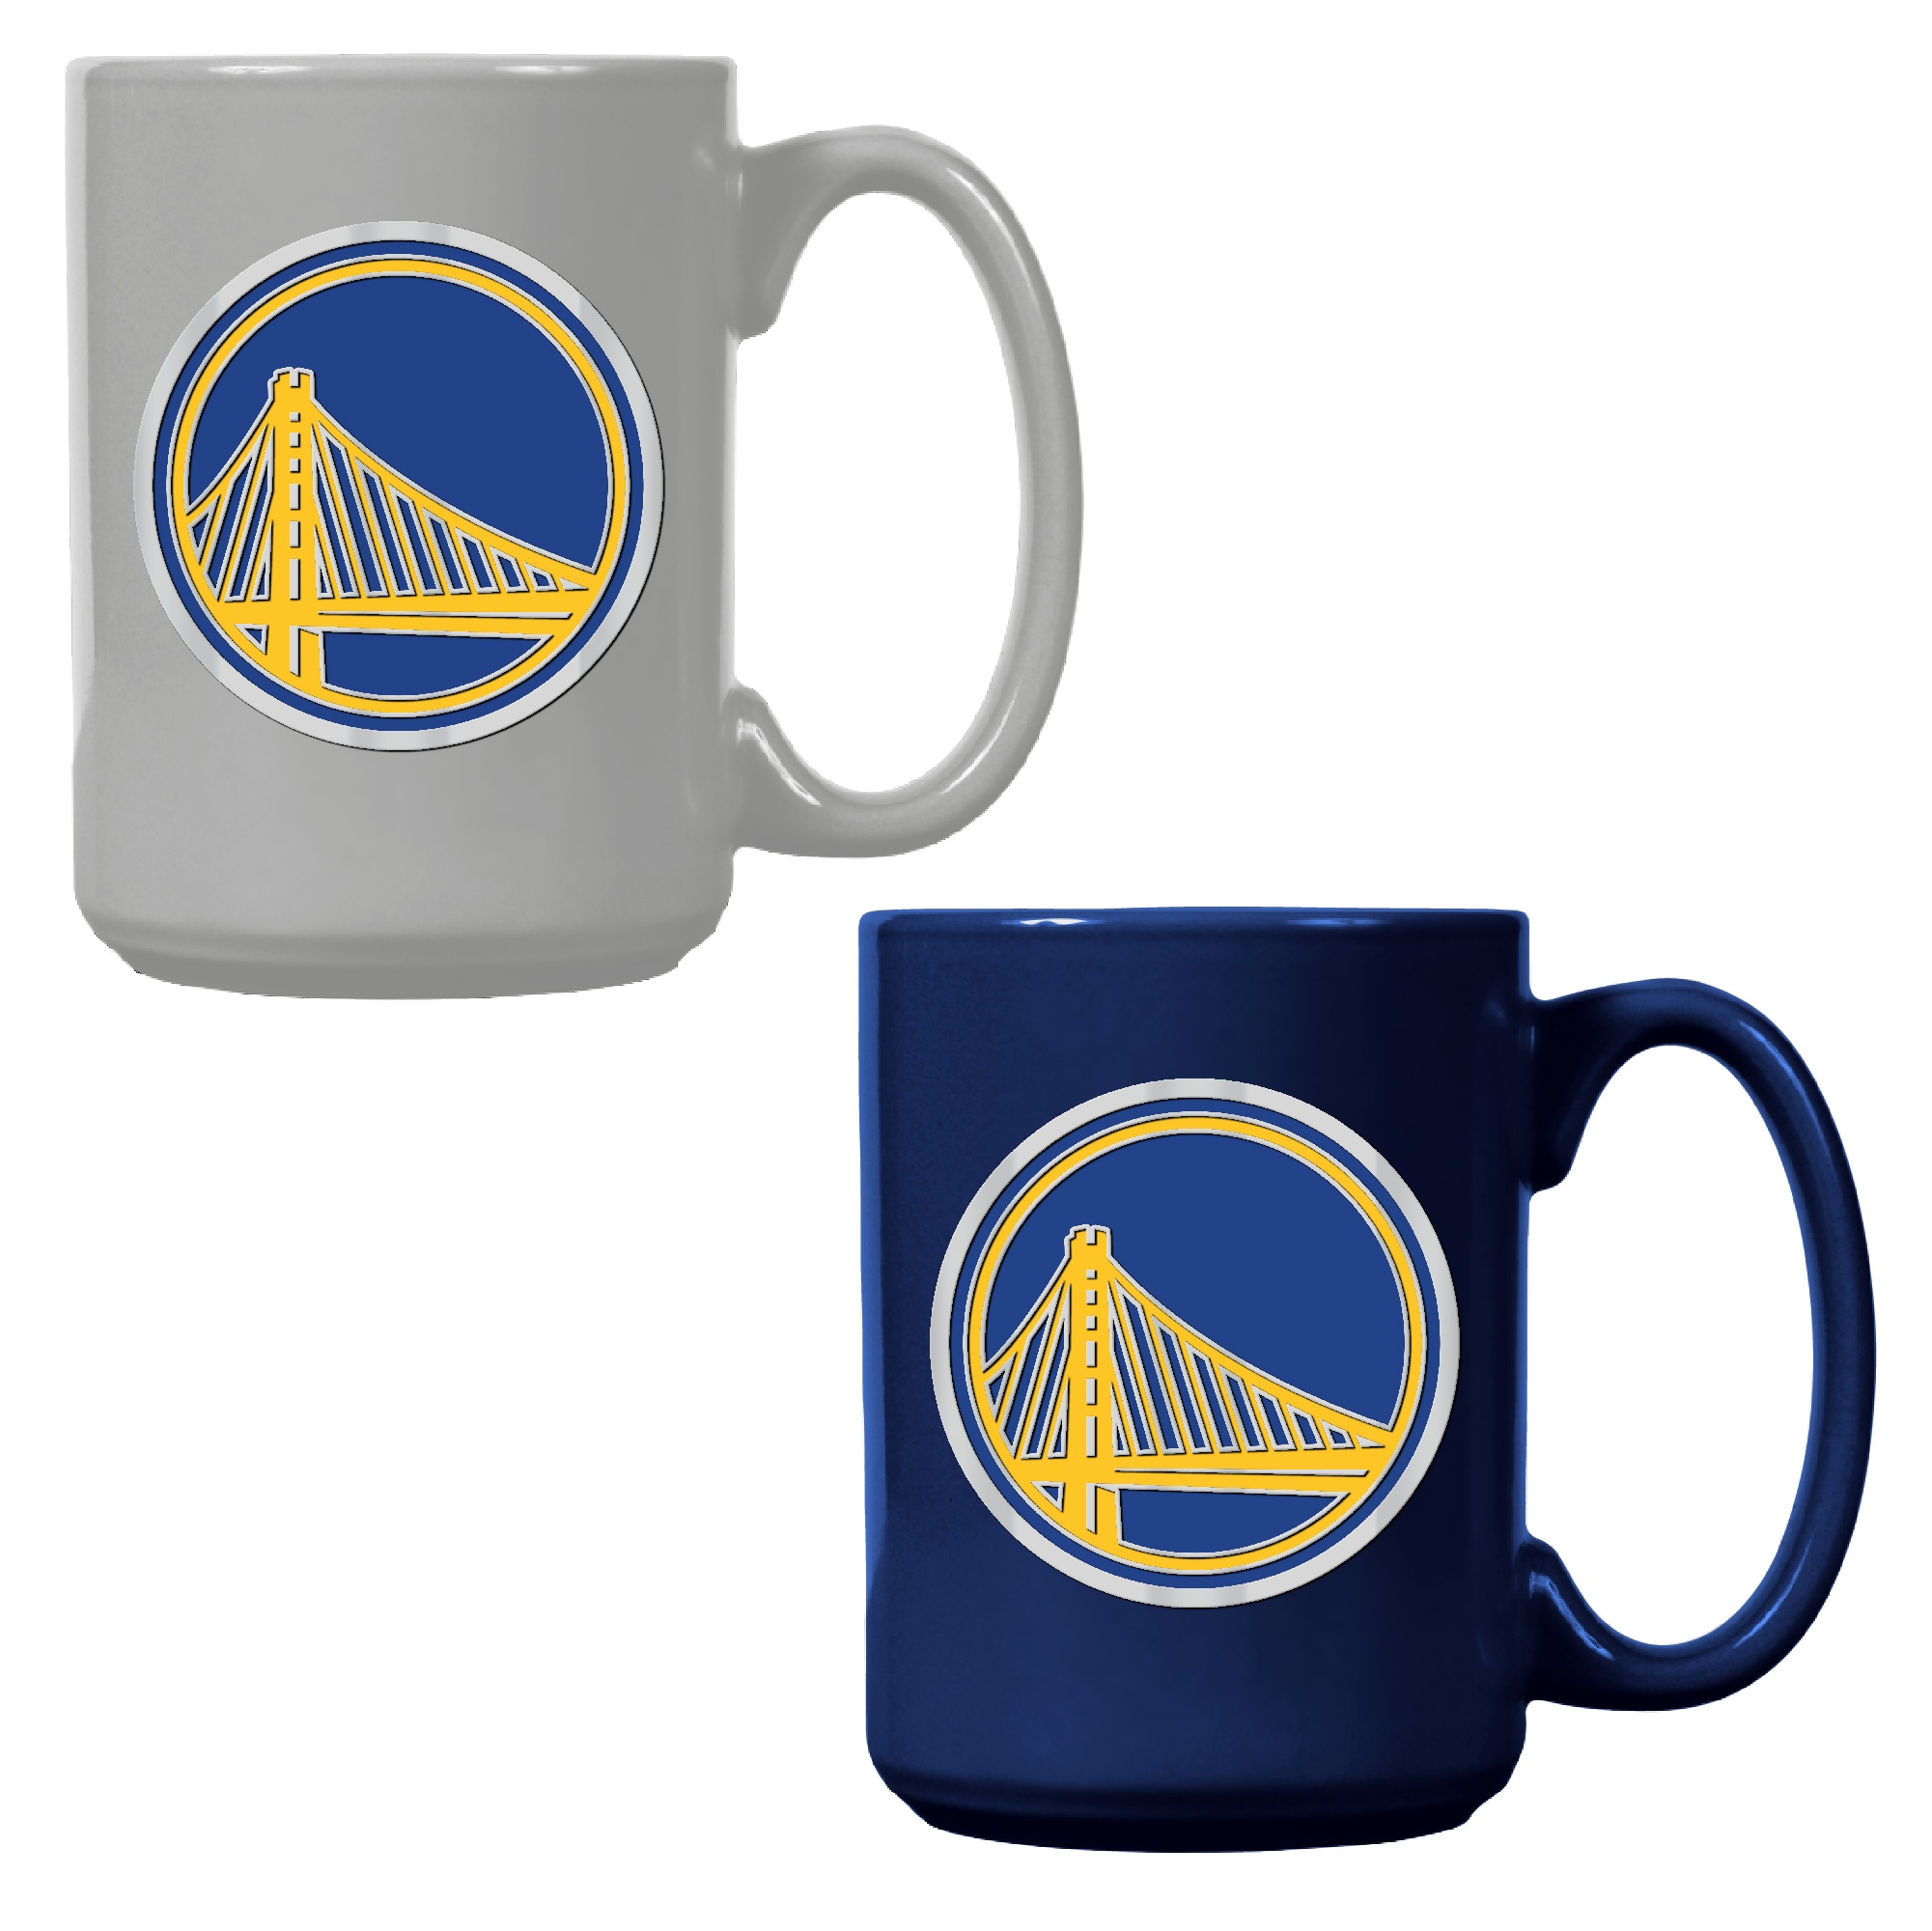 Golden State Warriors 15oz. Coffee Mug Set - Royal/White